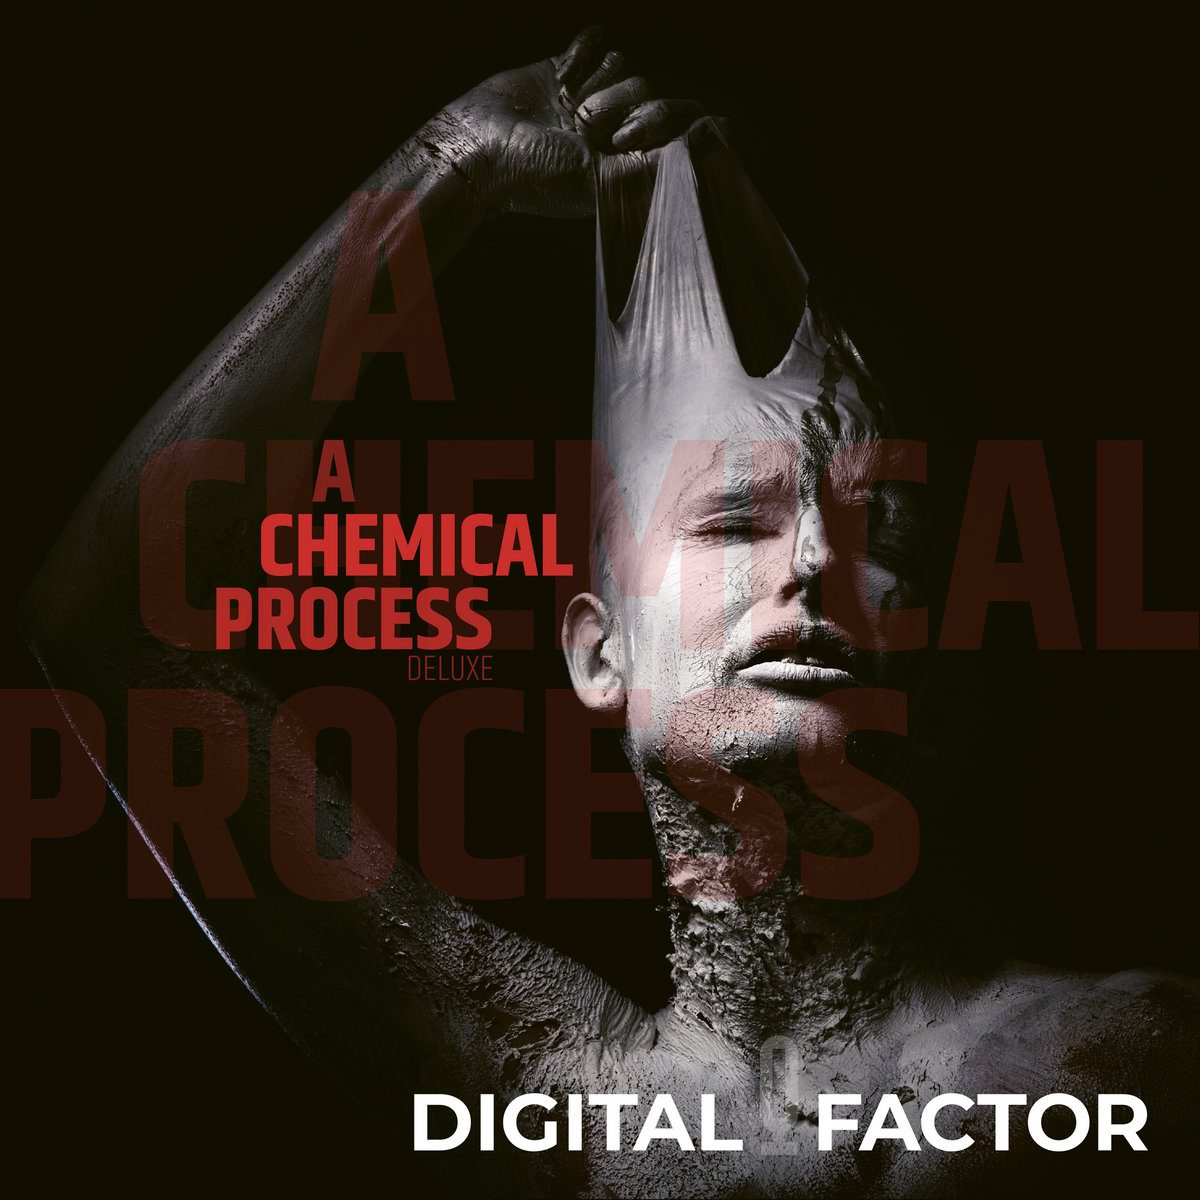 Digital Factor previews 2 tracks from upcoming album 'A Chemical Process' - ltd CD digipak comes with 2 exclusive bonus tracks not available as download